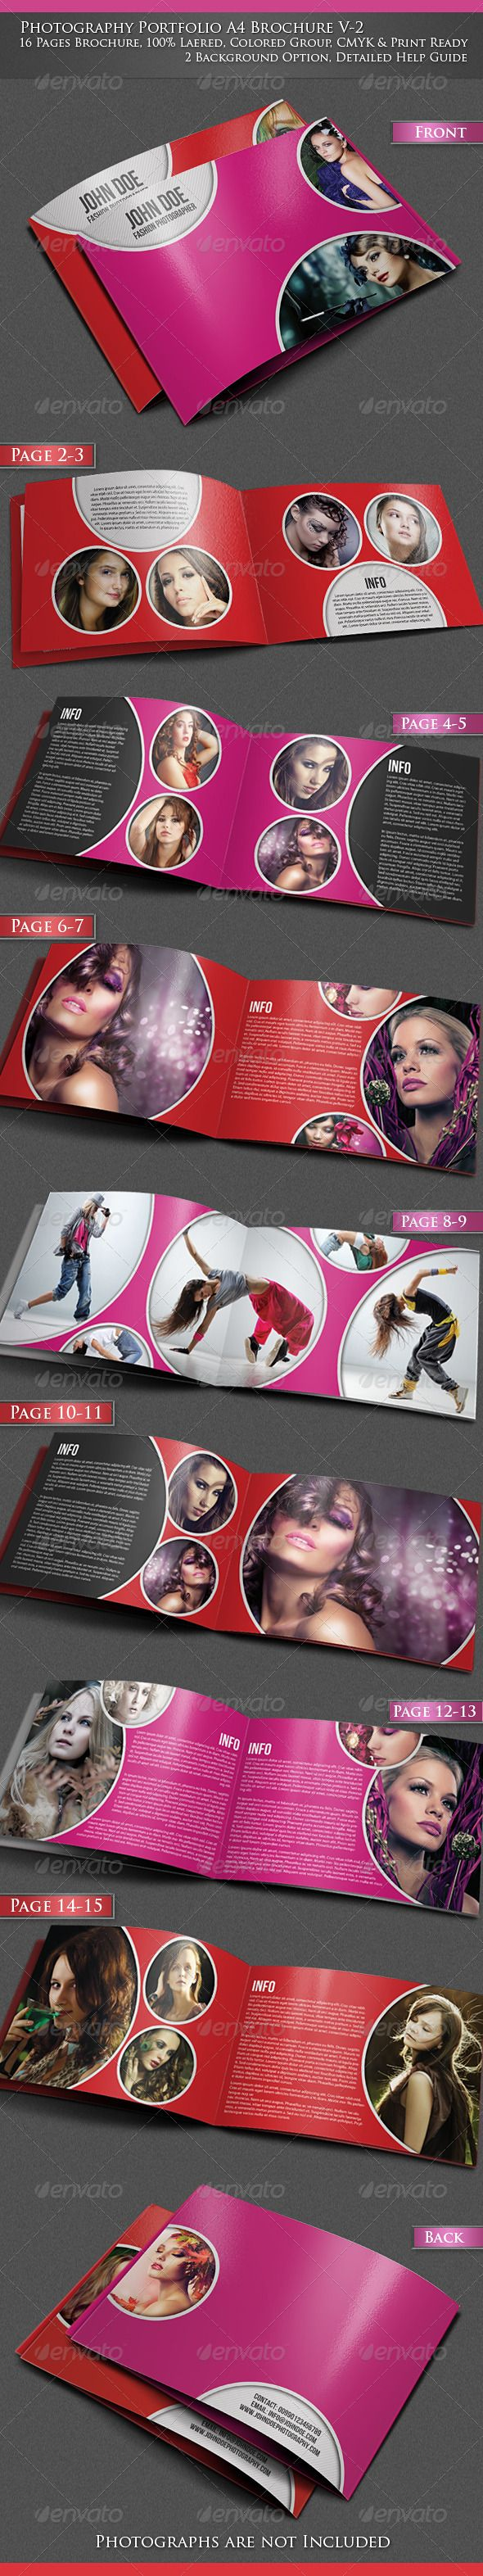 Photography Portfolio A4 Brochure -V2